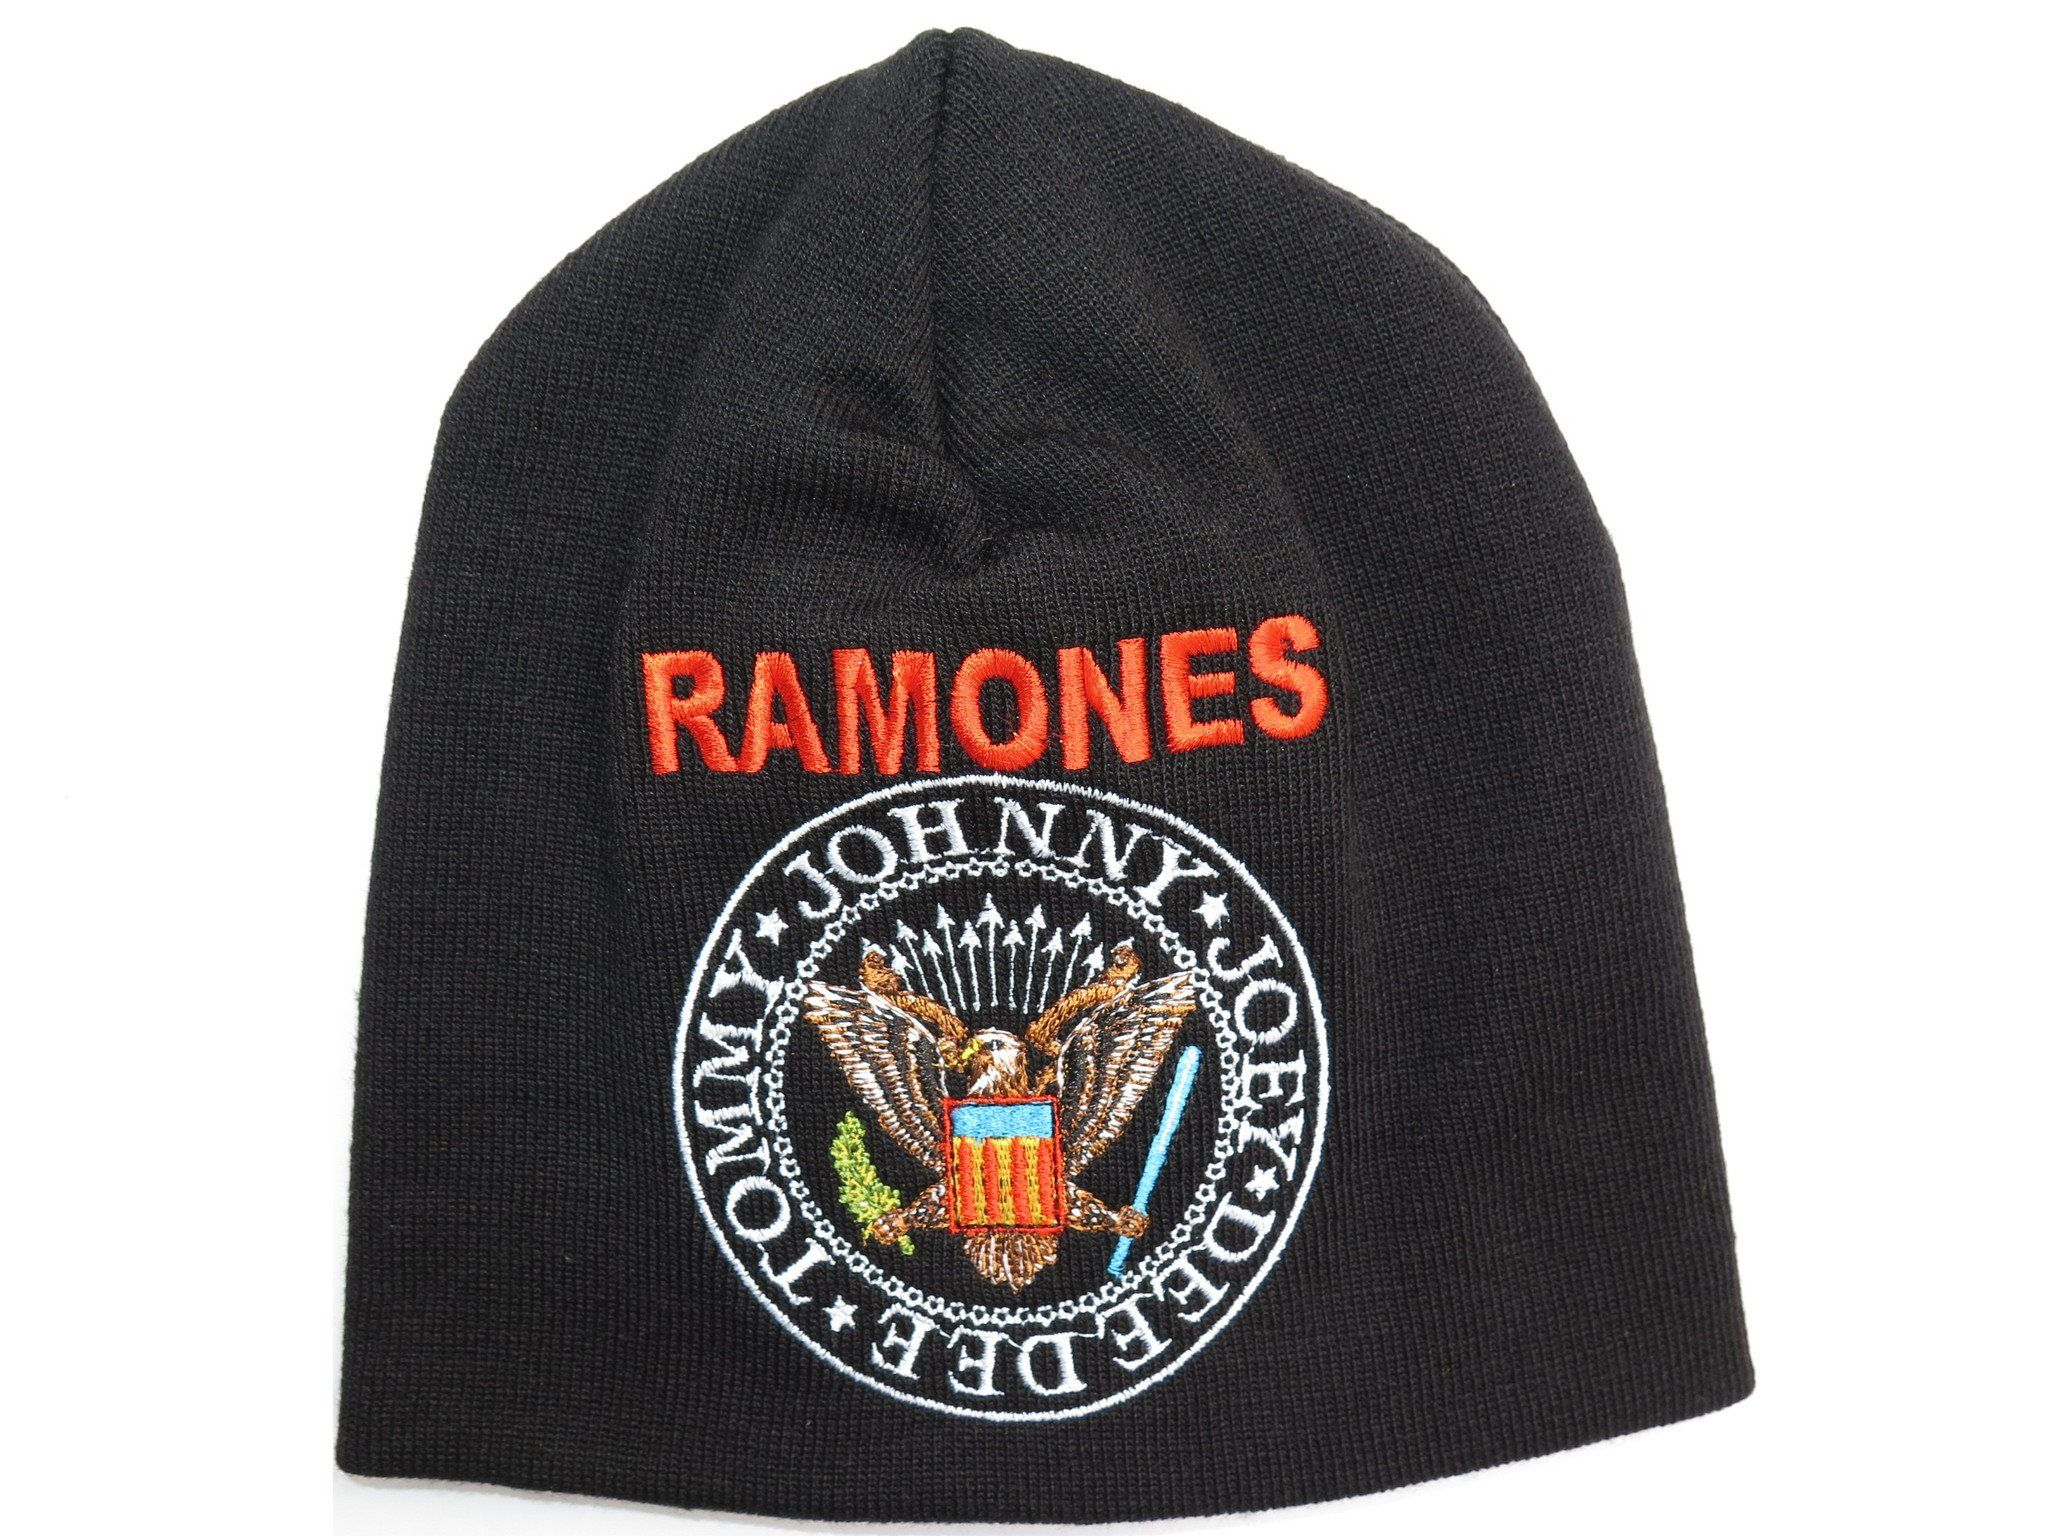 RAMONES Crest Winter Wool Beanie Hat BNWT - A Patch E Store